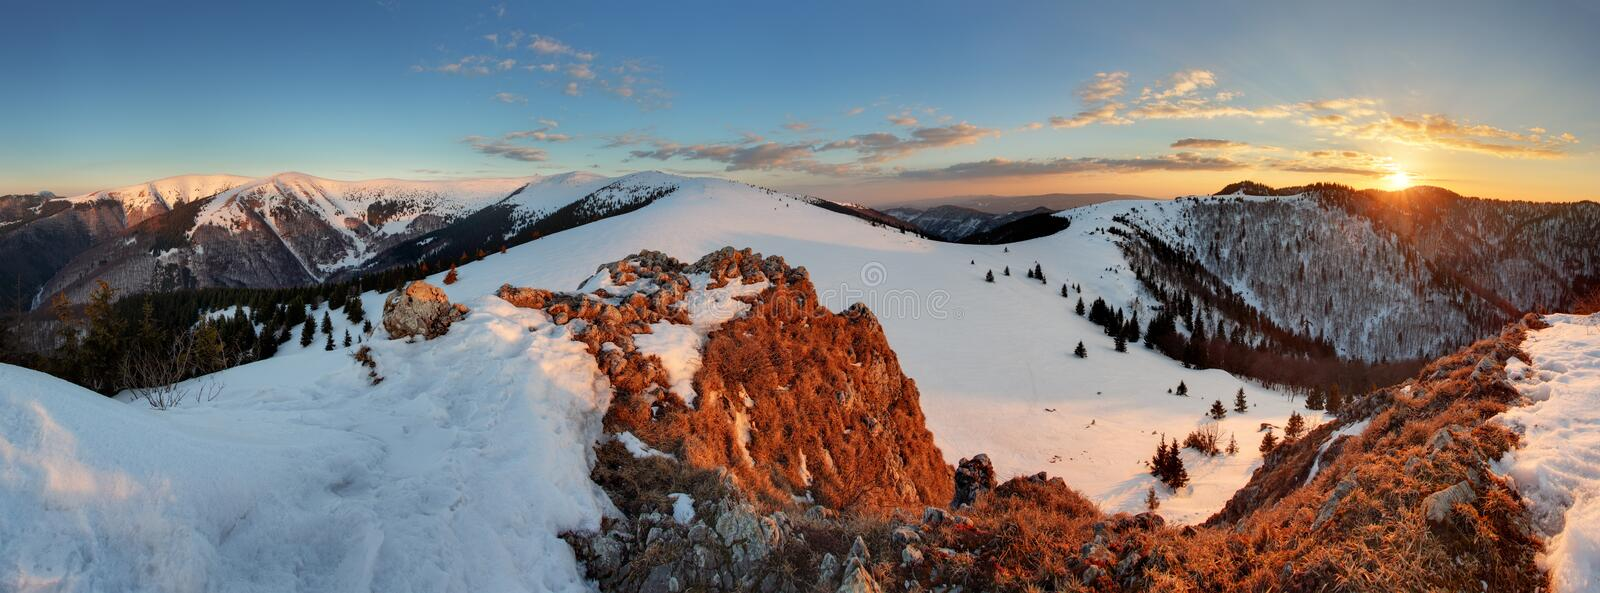 Panorama of winter mountain, Slovakia frozen landscape.  royalty free stock image